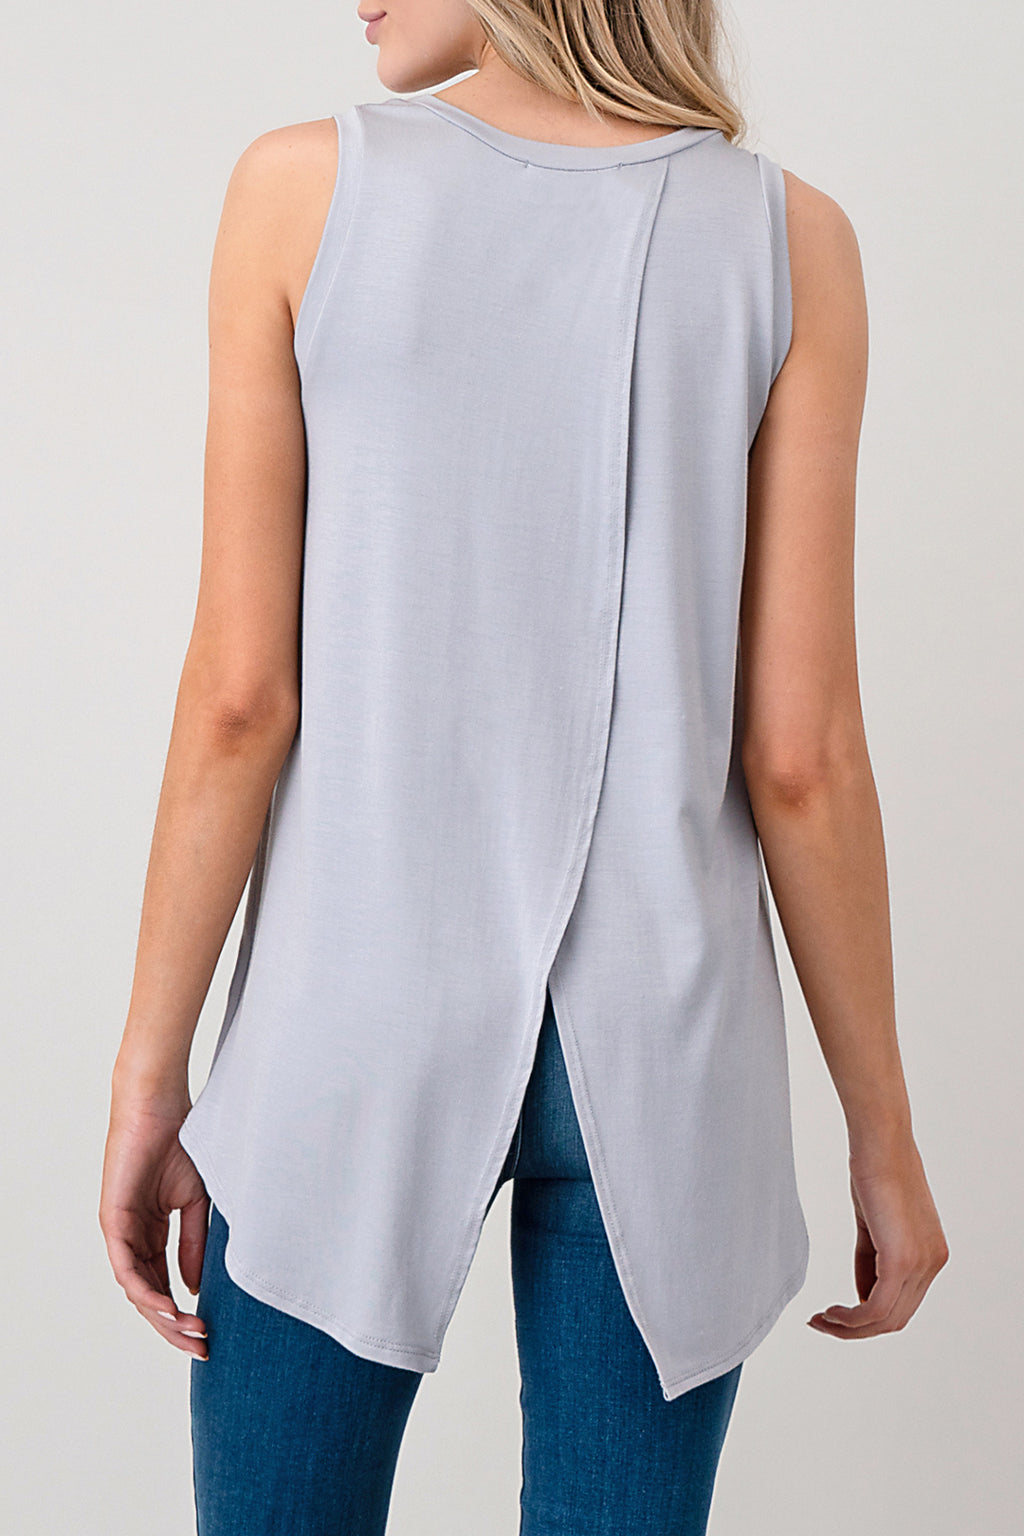 crisscross open back flyaway tank top by natural life wholesale